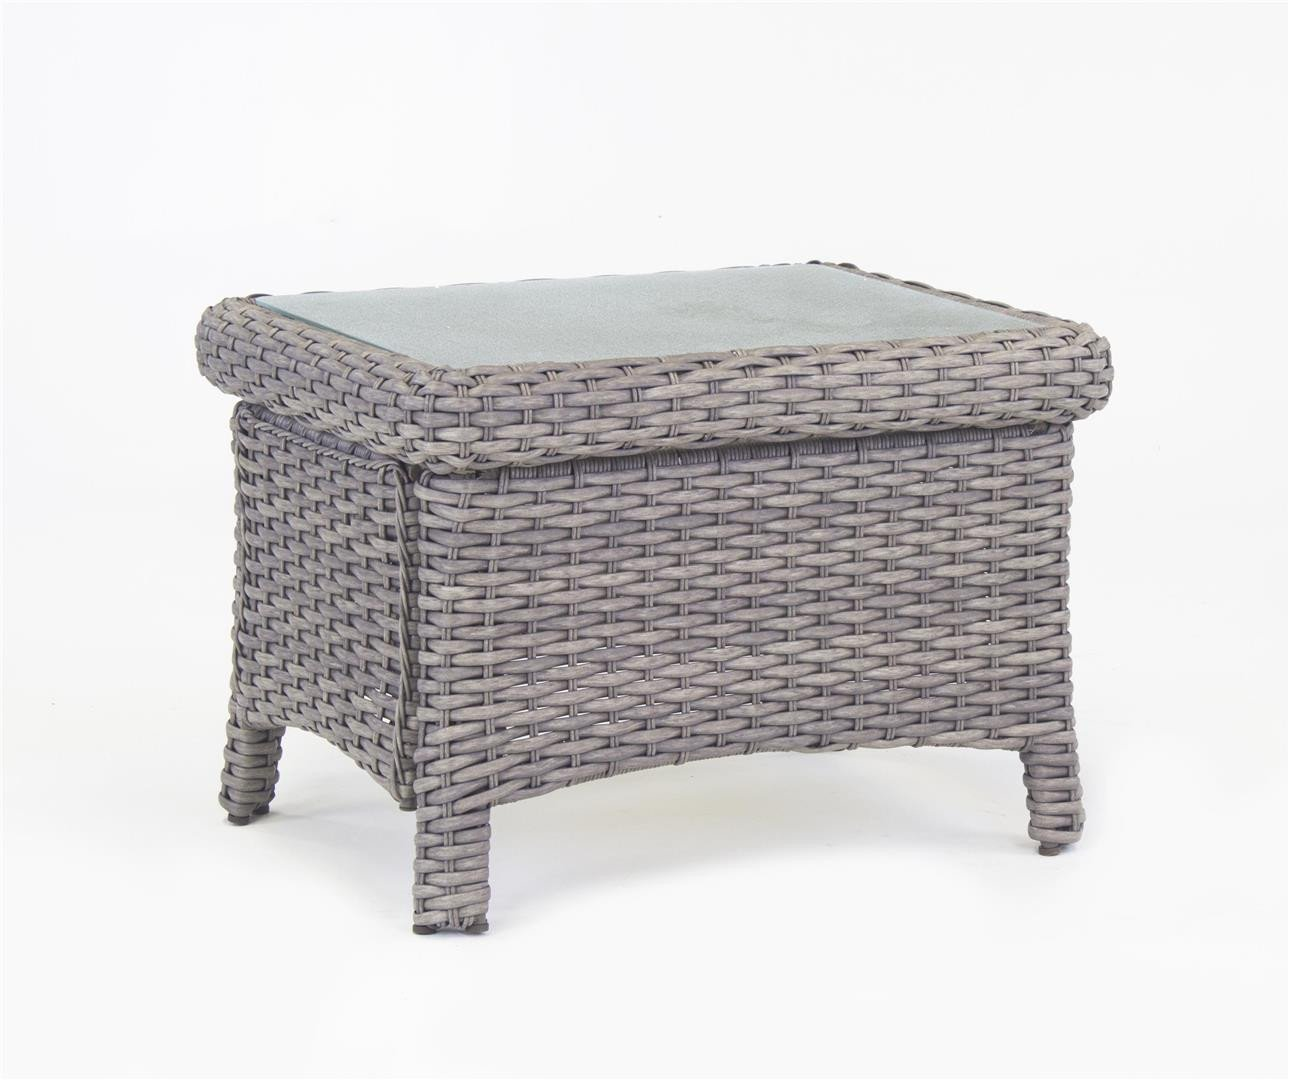 South Sea Rattan South Sea Rattan St. Tropez End Table End Table - Rattan Imports